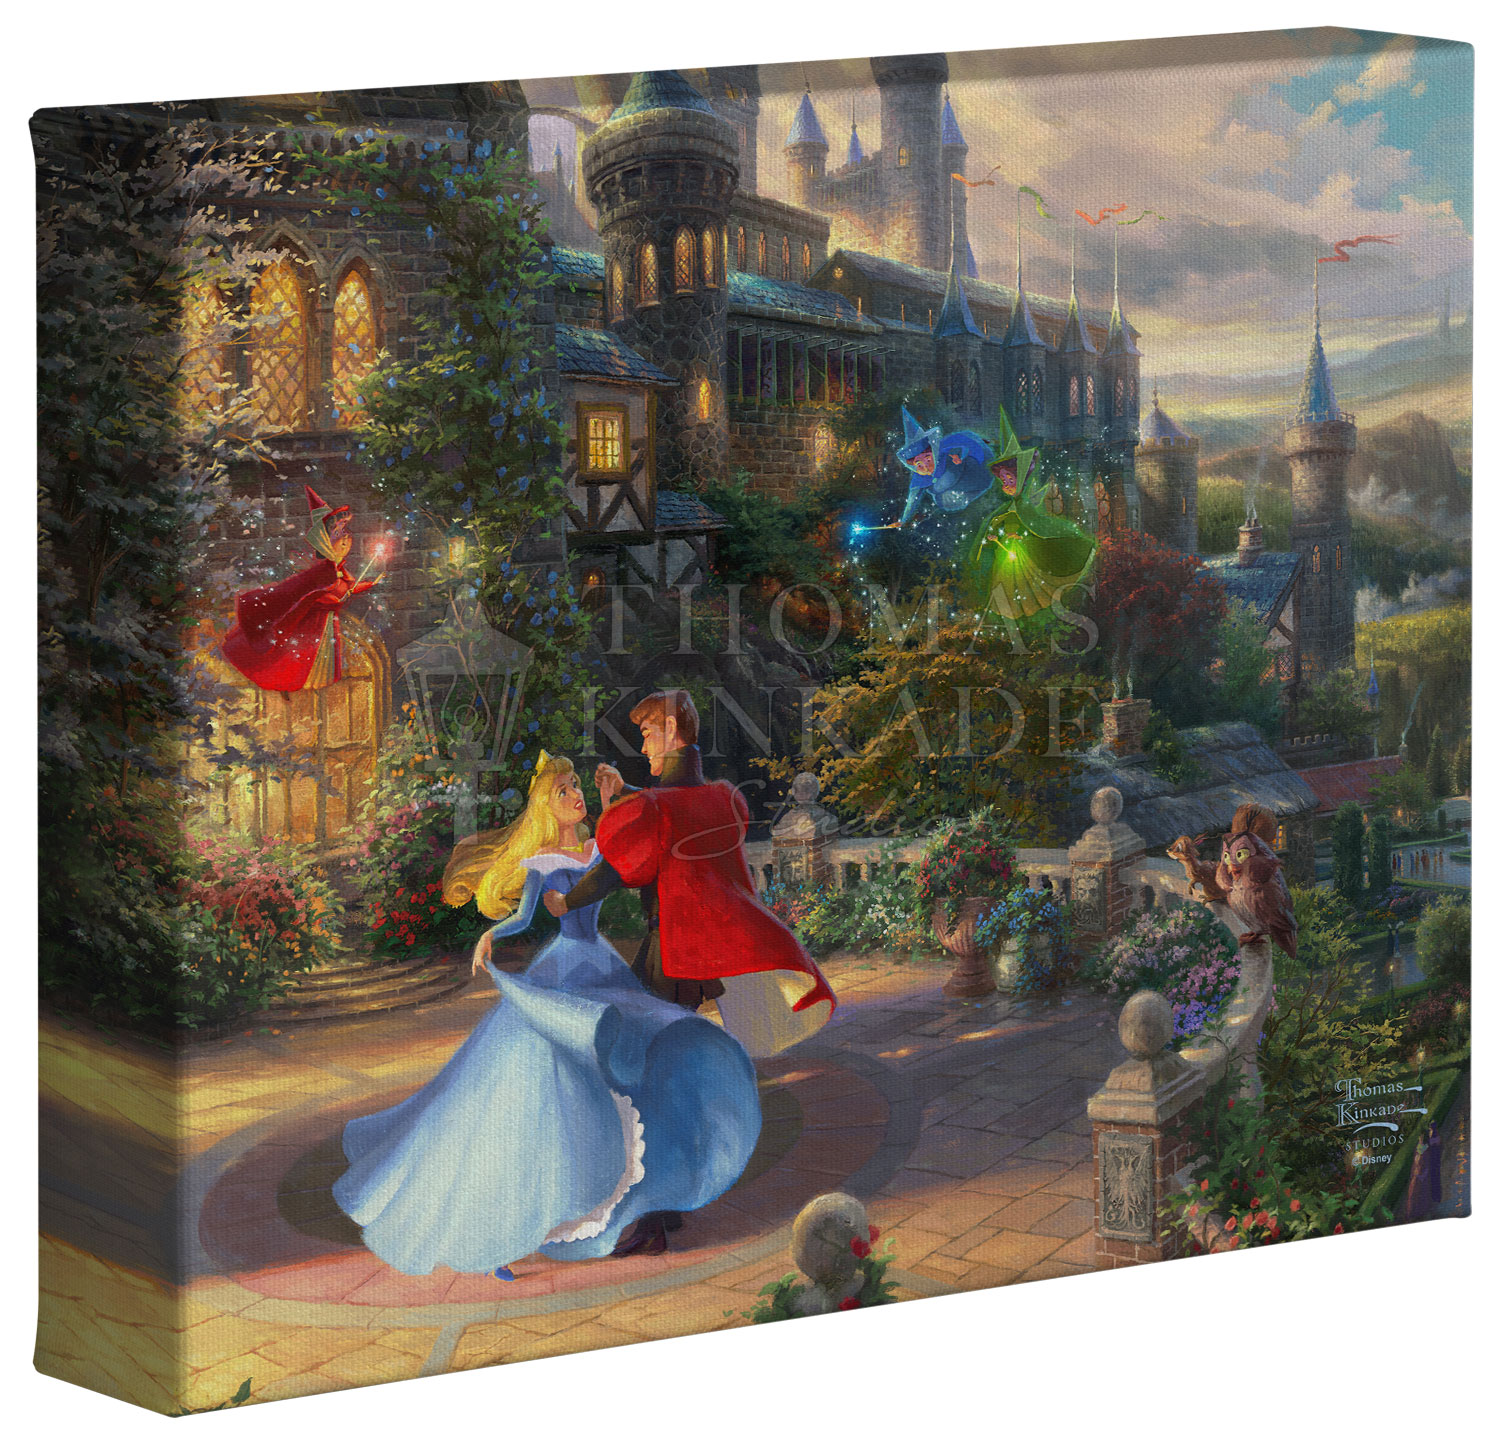 Disney Sleeping Beauty Dancing in the Enchanted Light – 8″ x 10″ Gallery Wrapped Canvas